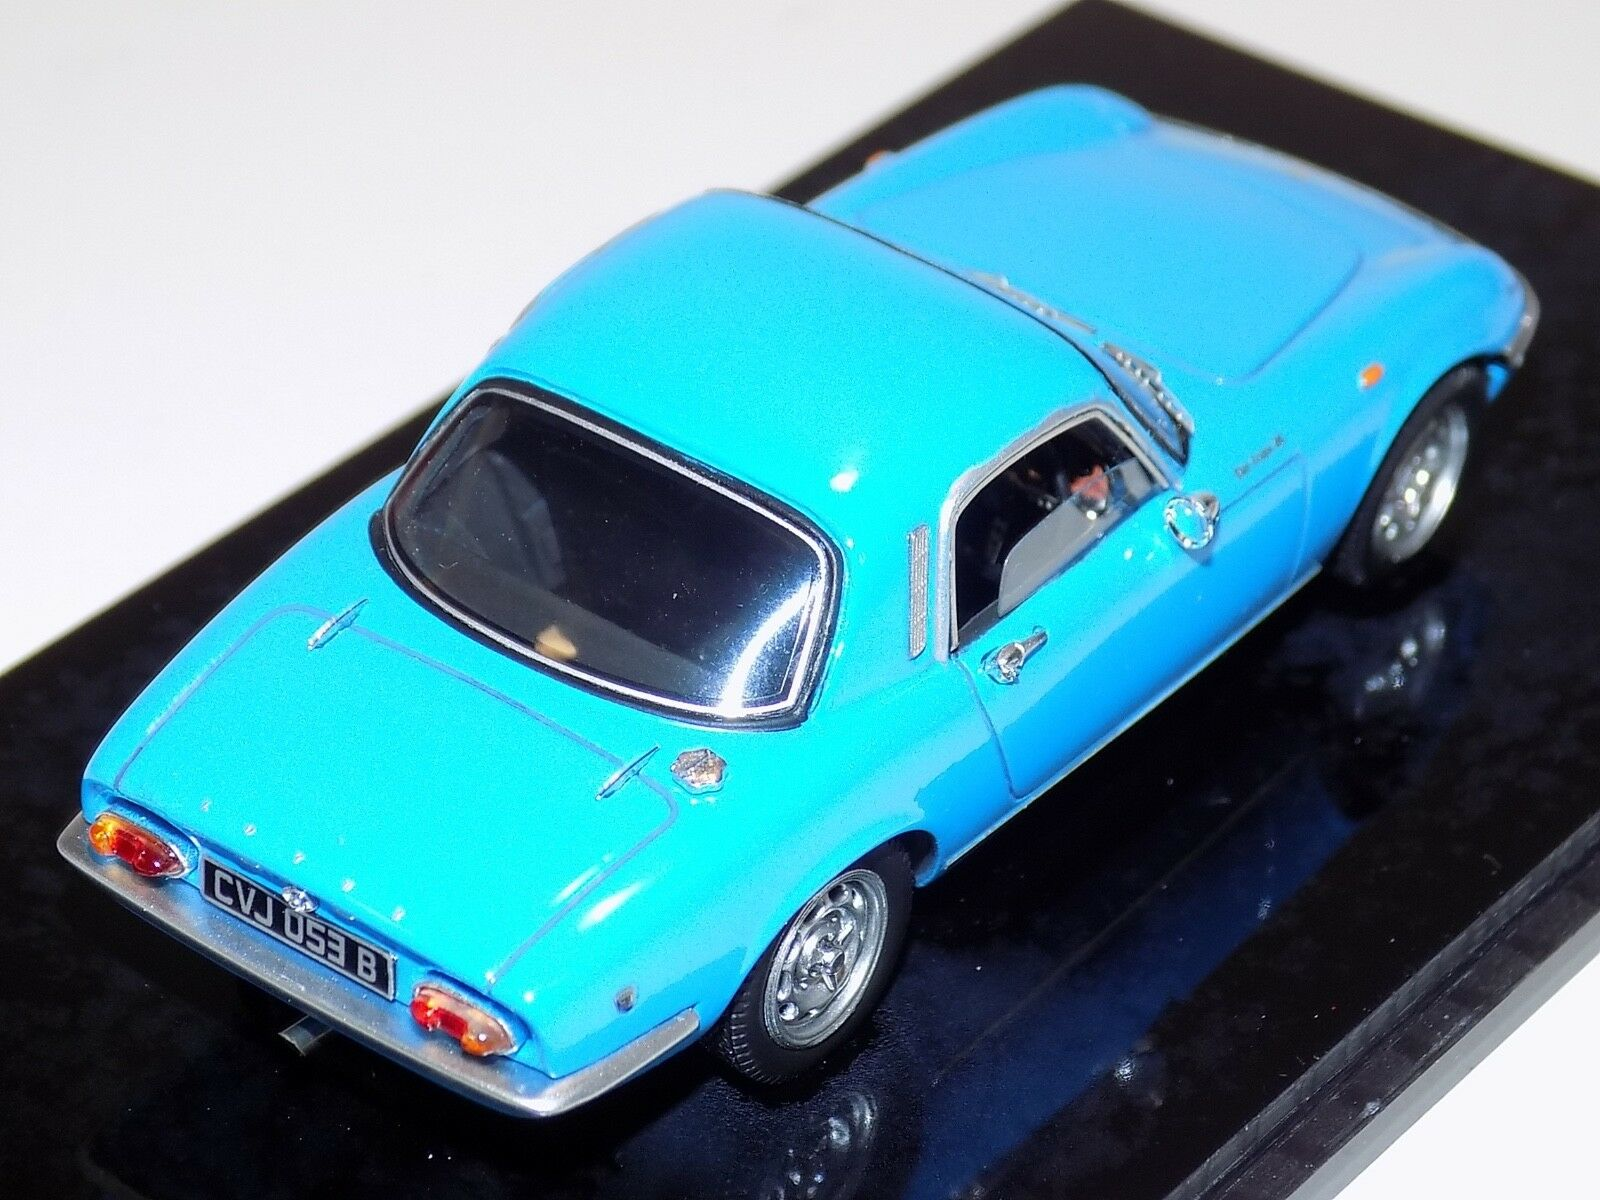 1 43 Spark Street Lotus Elan S3 S3 S3 FHC from 1965 in bluee  S2221 d668f5